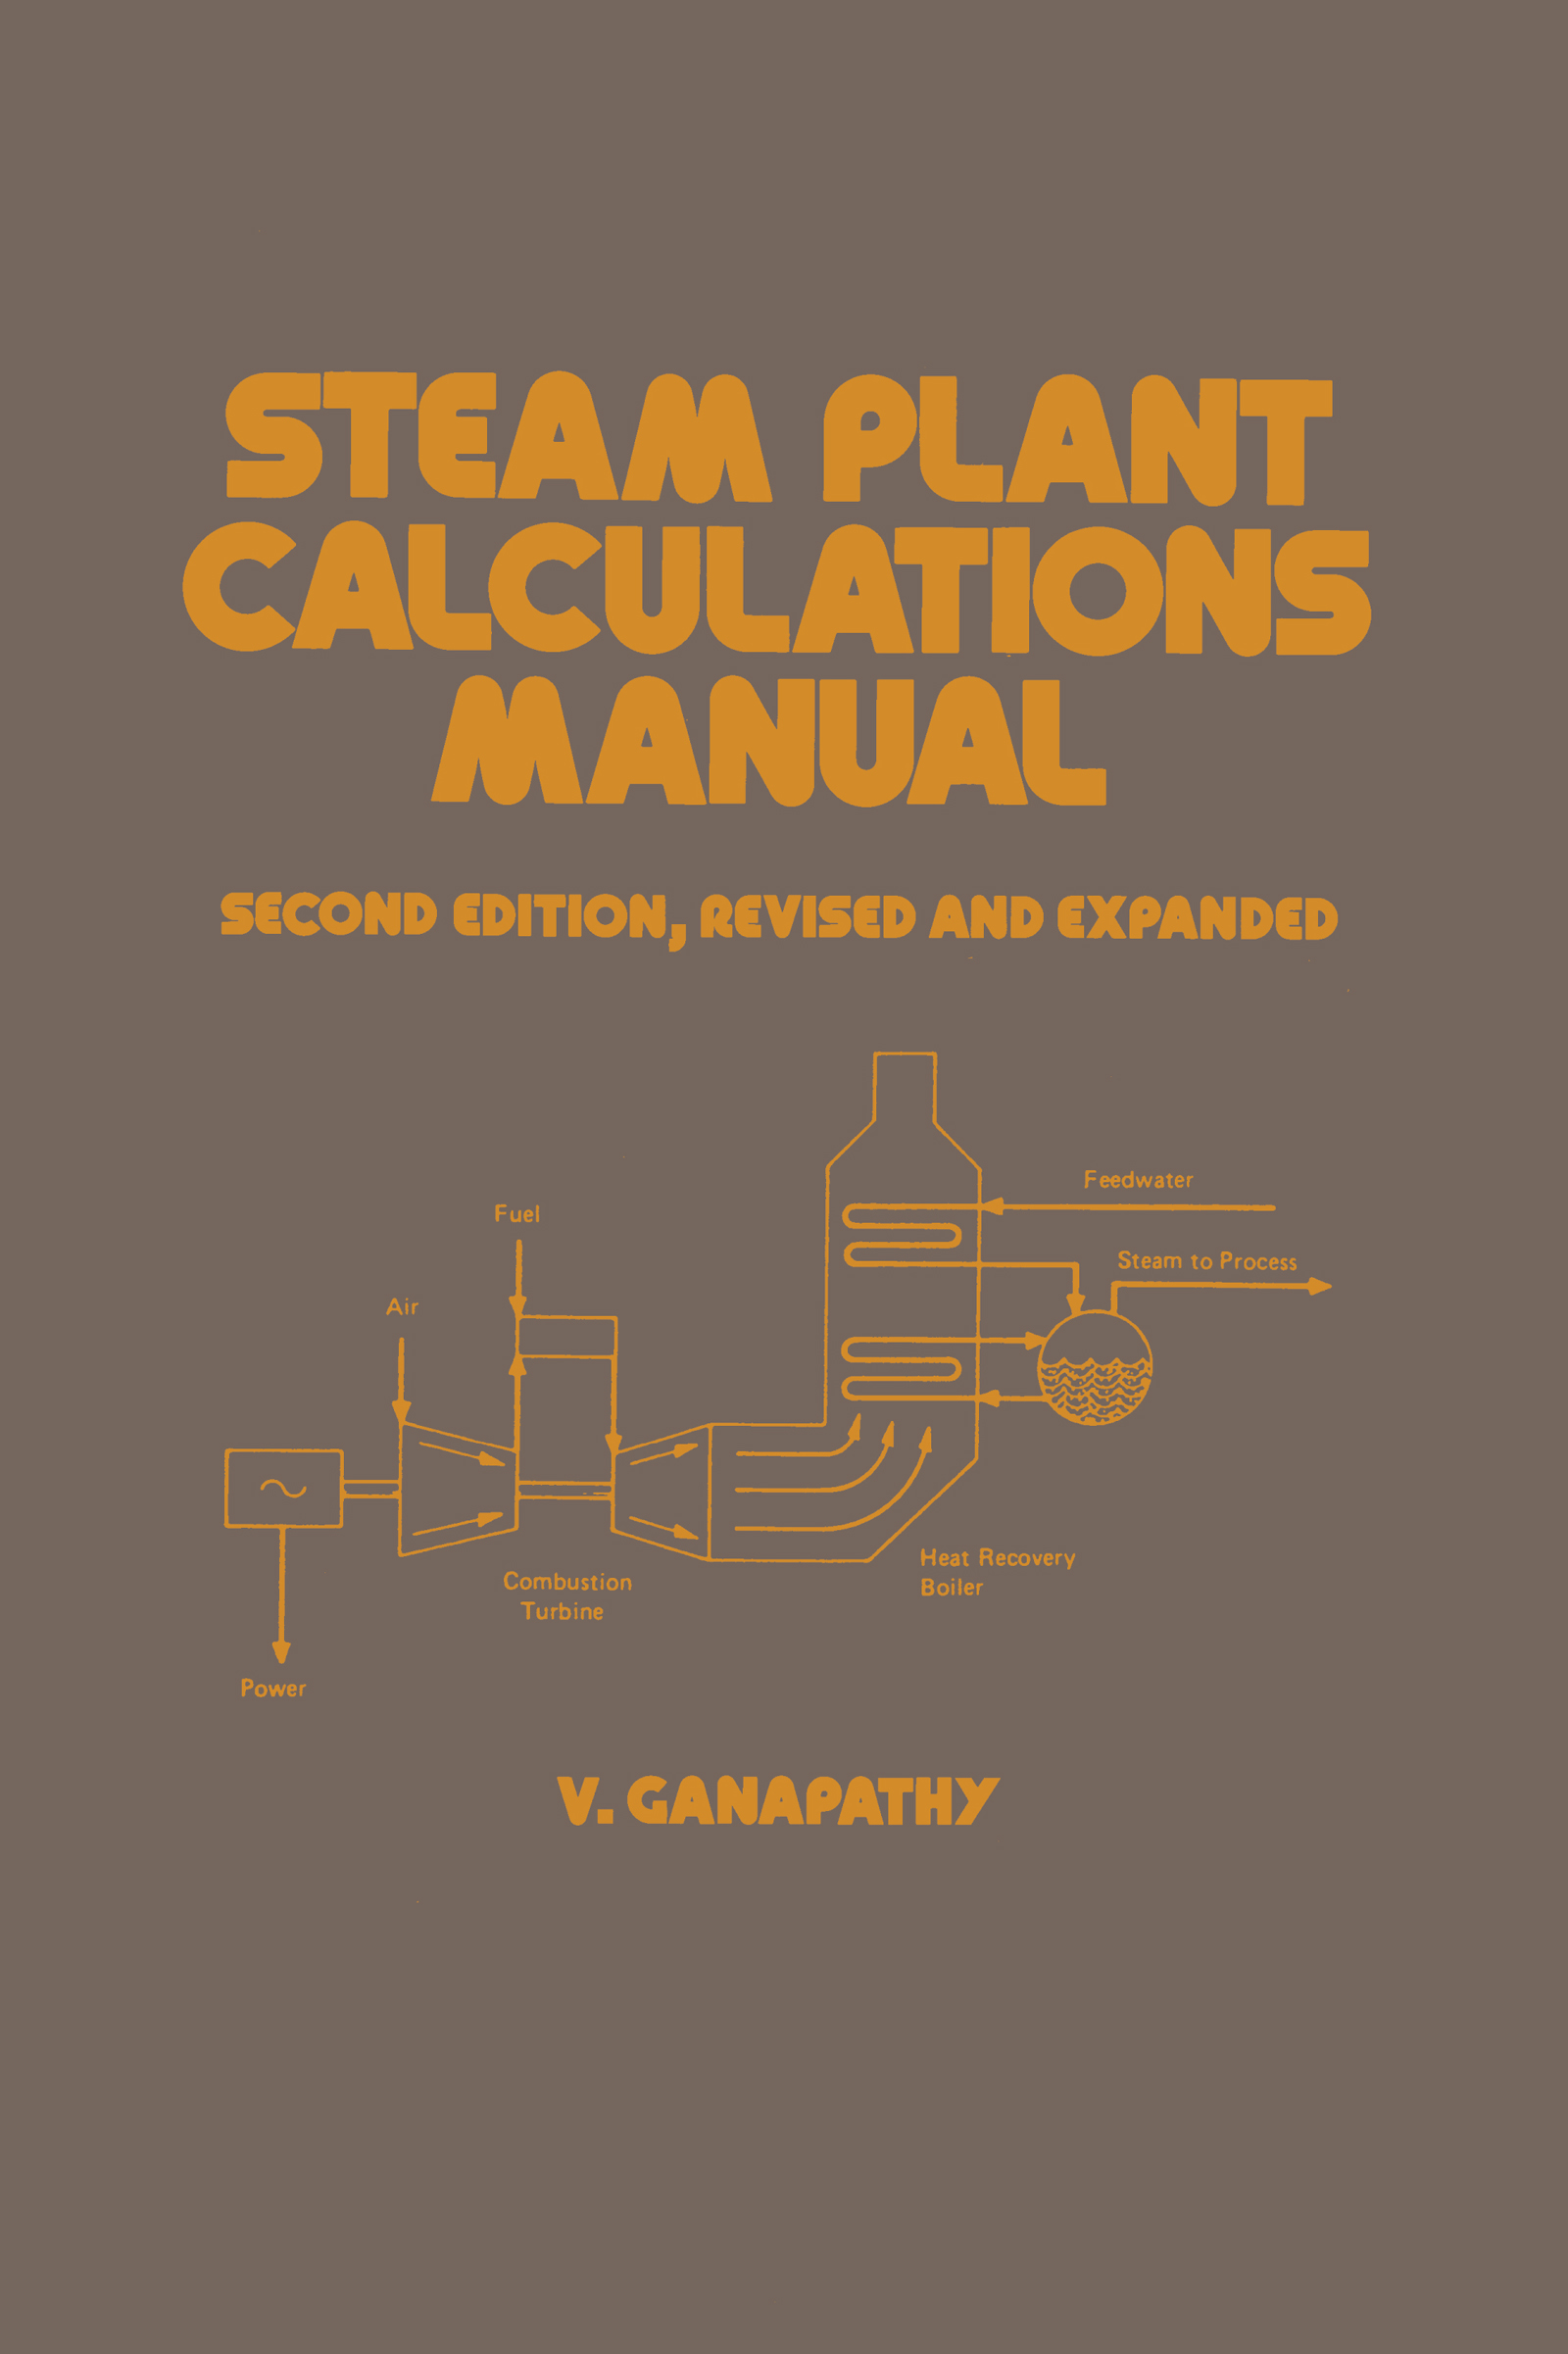 Steam Plant Calculations Manual, Revised and Expanded